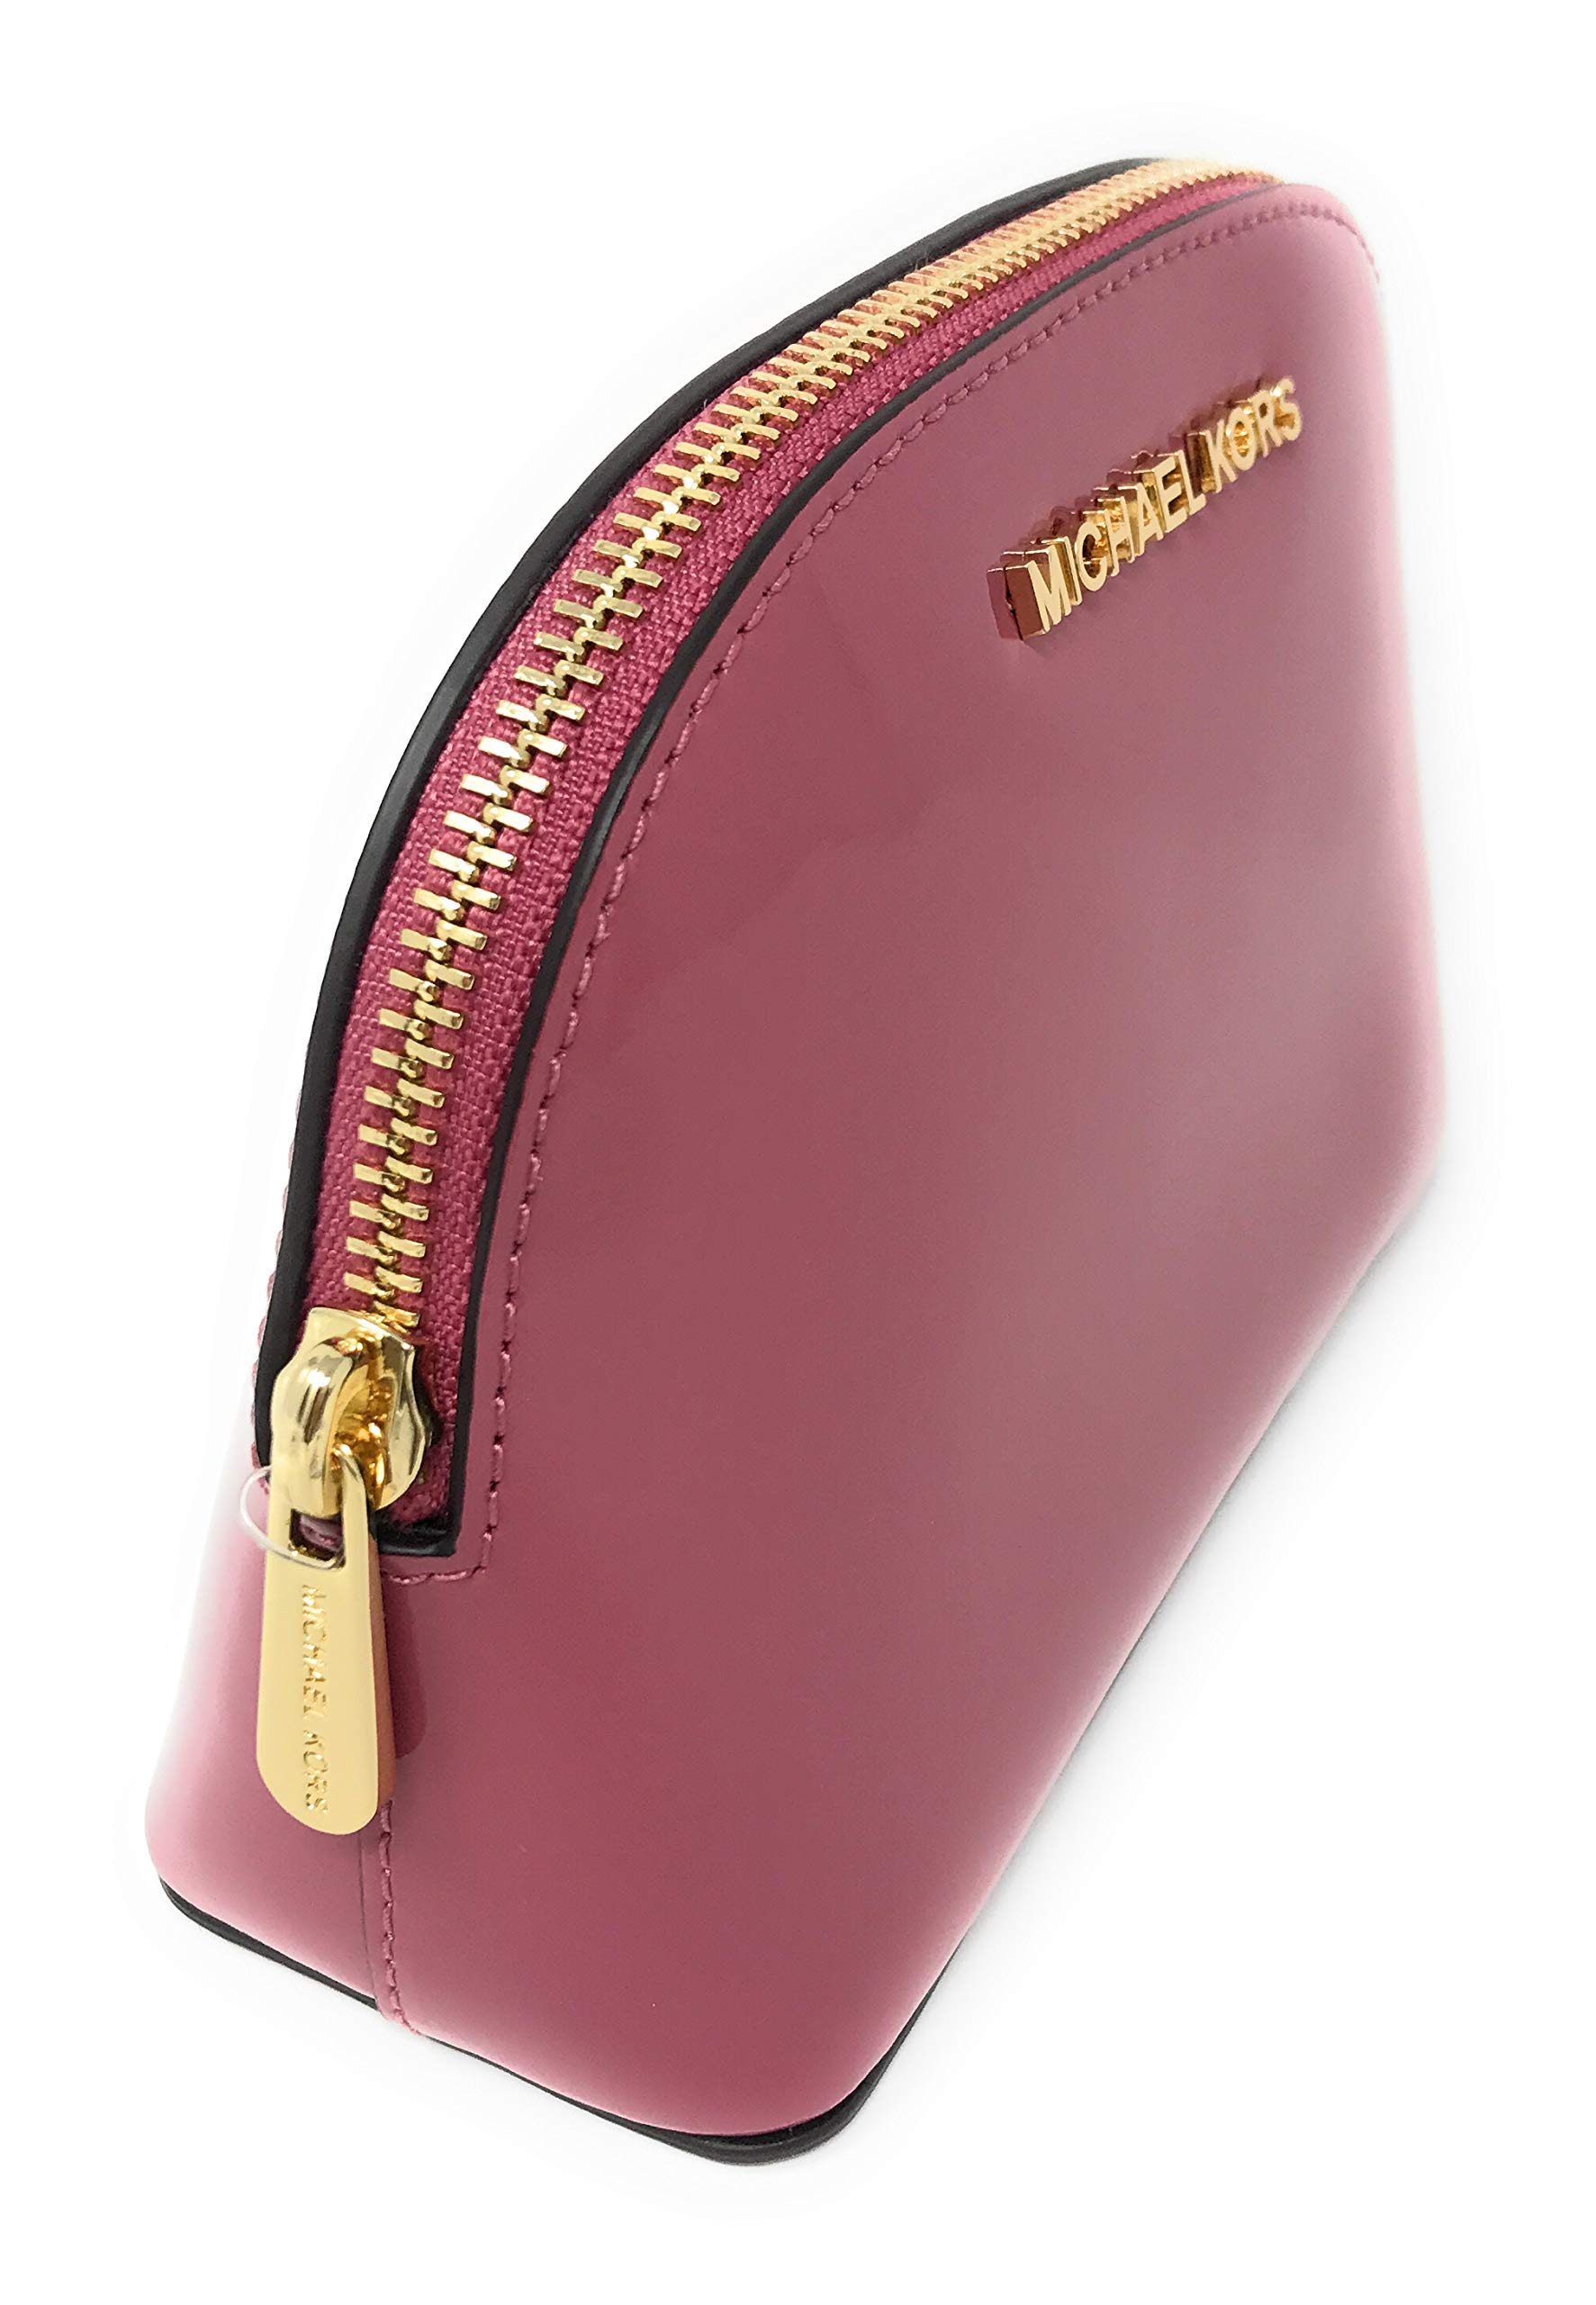 Michael Kors Jet Set Travel Patent Leather Cosmetic Travel Pouch (Tulip) by Michael Kors (Image #2)